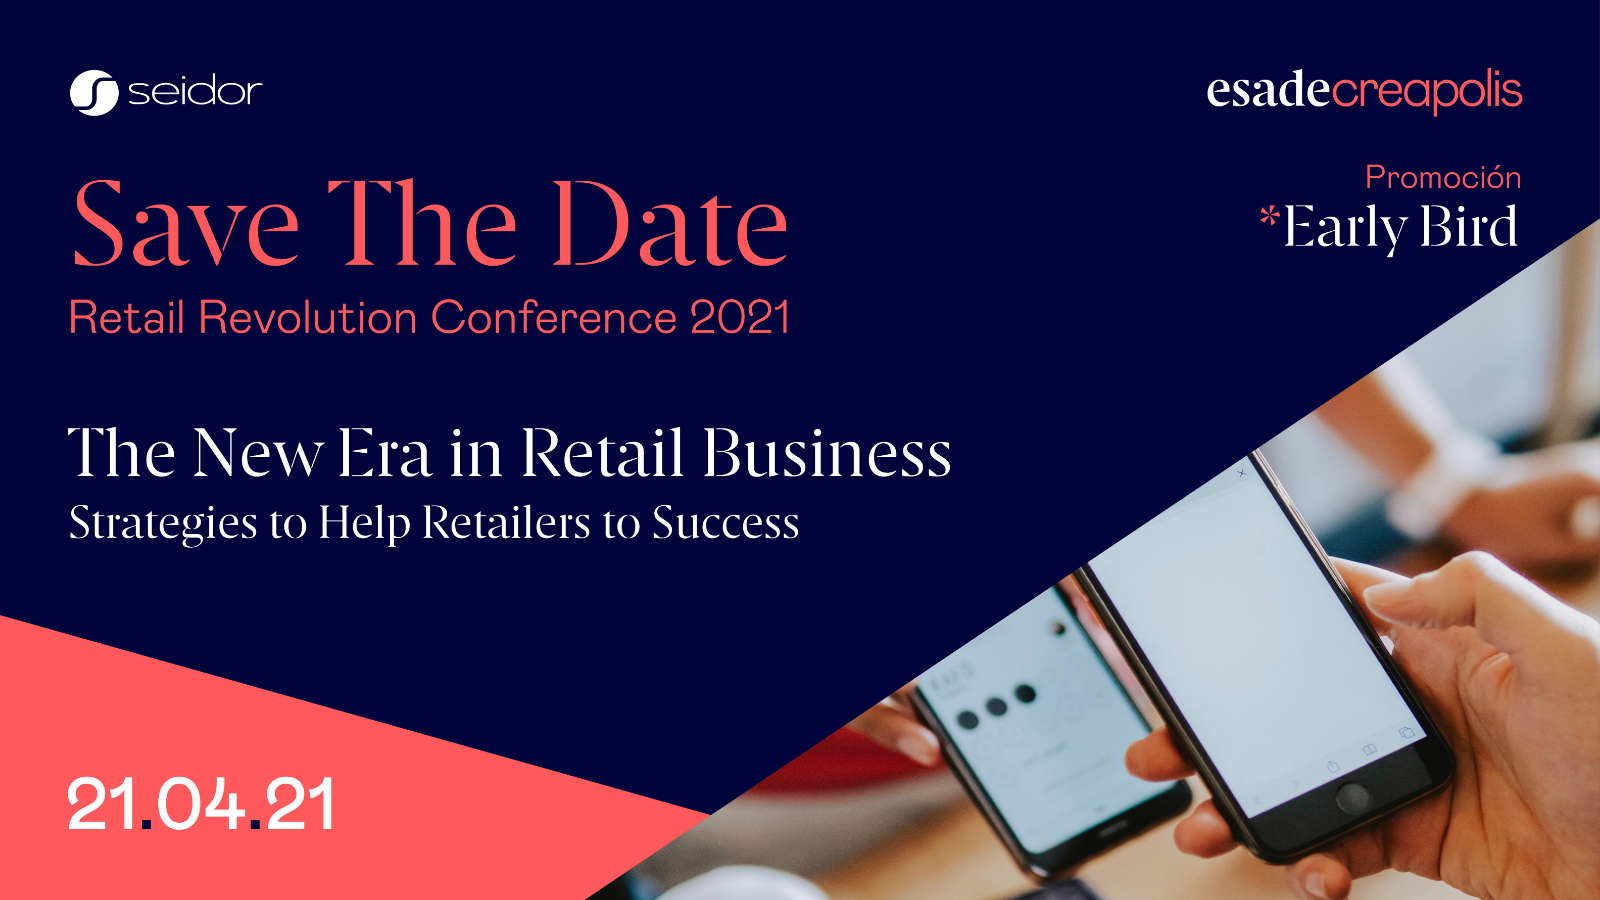 Save The Date: Retail Revolution Conference 2021